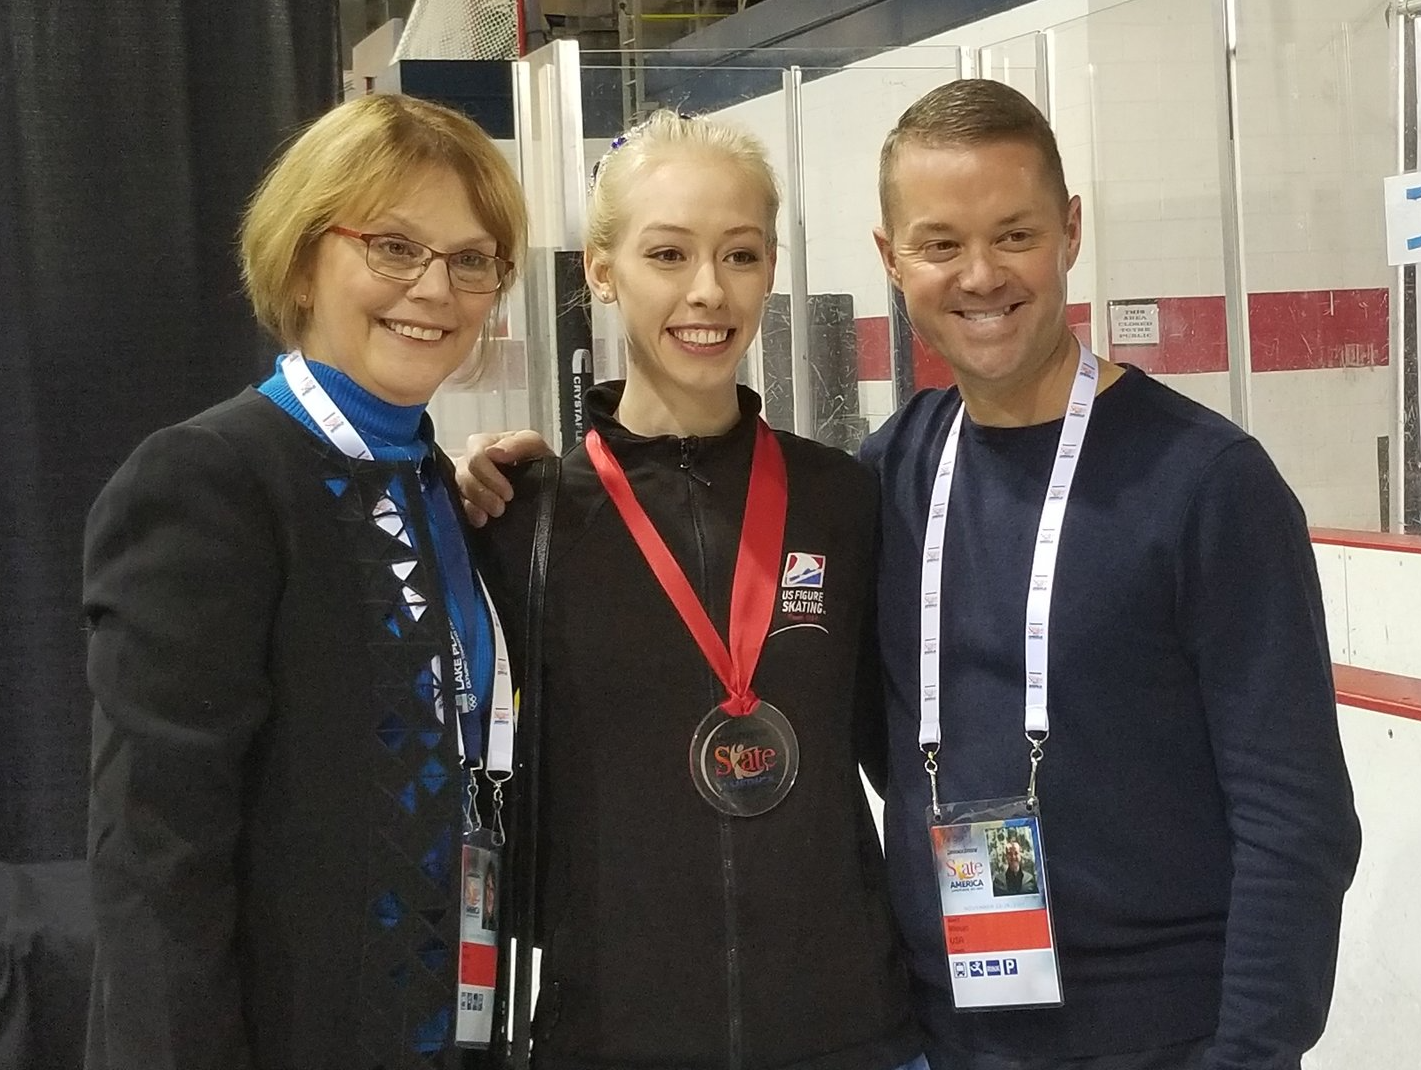 Bradie Tennell, 2017 Skate America Bronze Medalist, with her coach Denise Myers and choreographer Scott Brown.